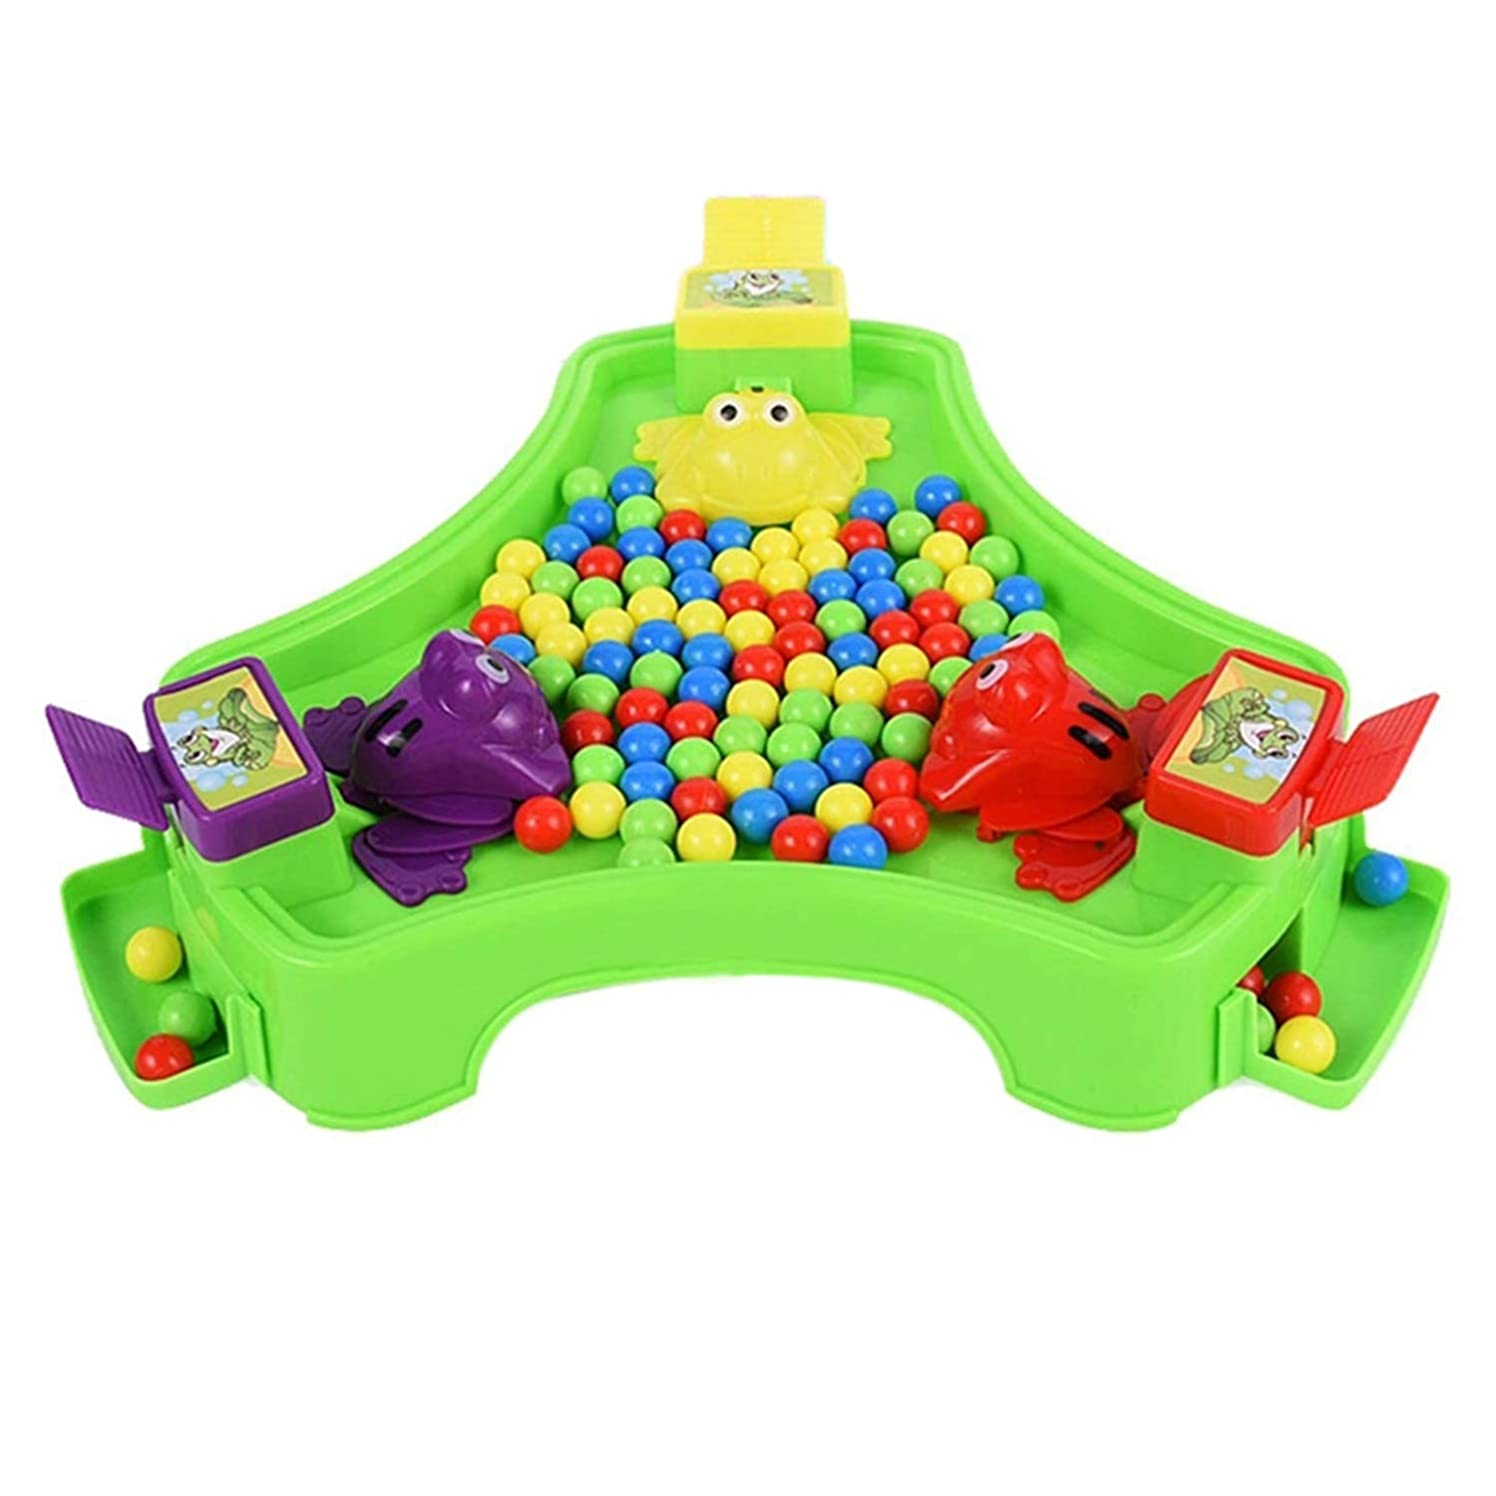 SODIAL Feeding Frog Family Party Game Popular Toys for Children Parent-Child Interaction Funny Toys Novelty Gag Gifts for Kids,B